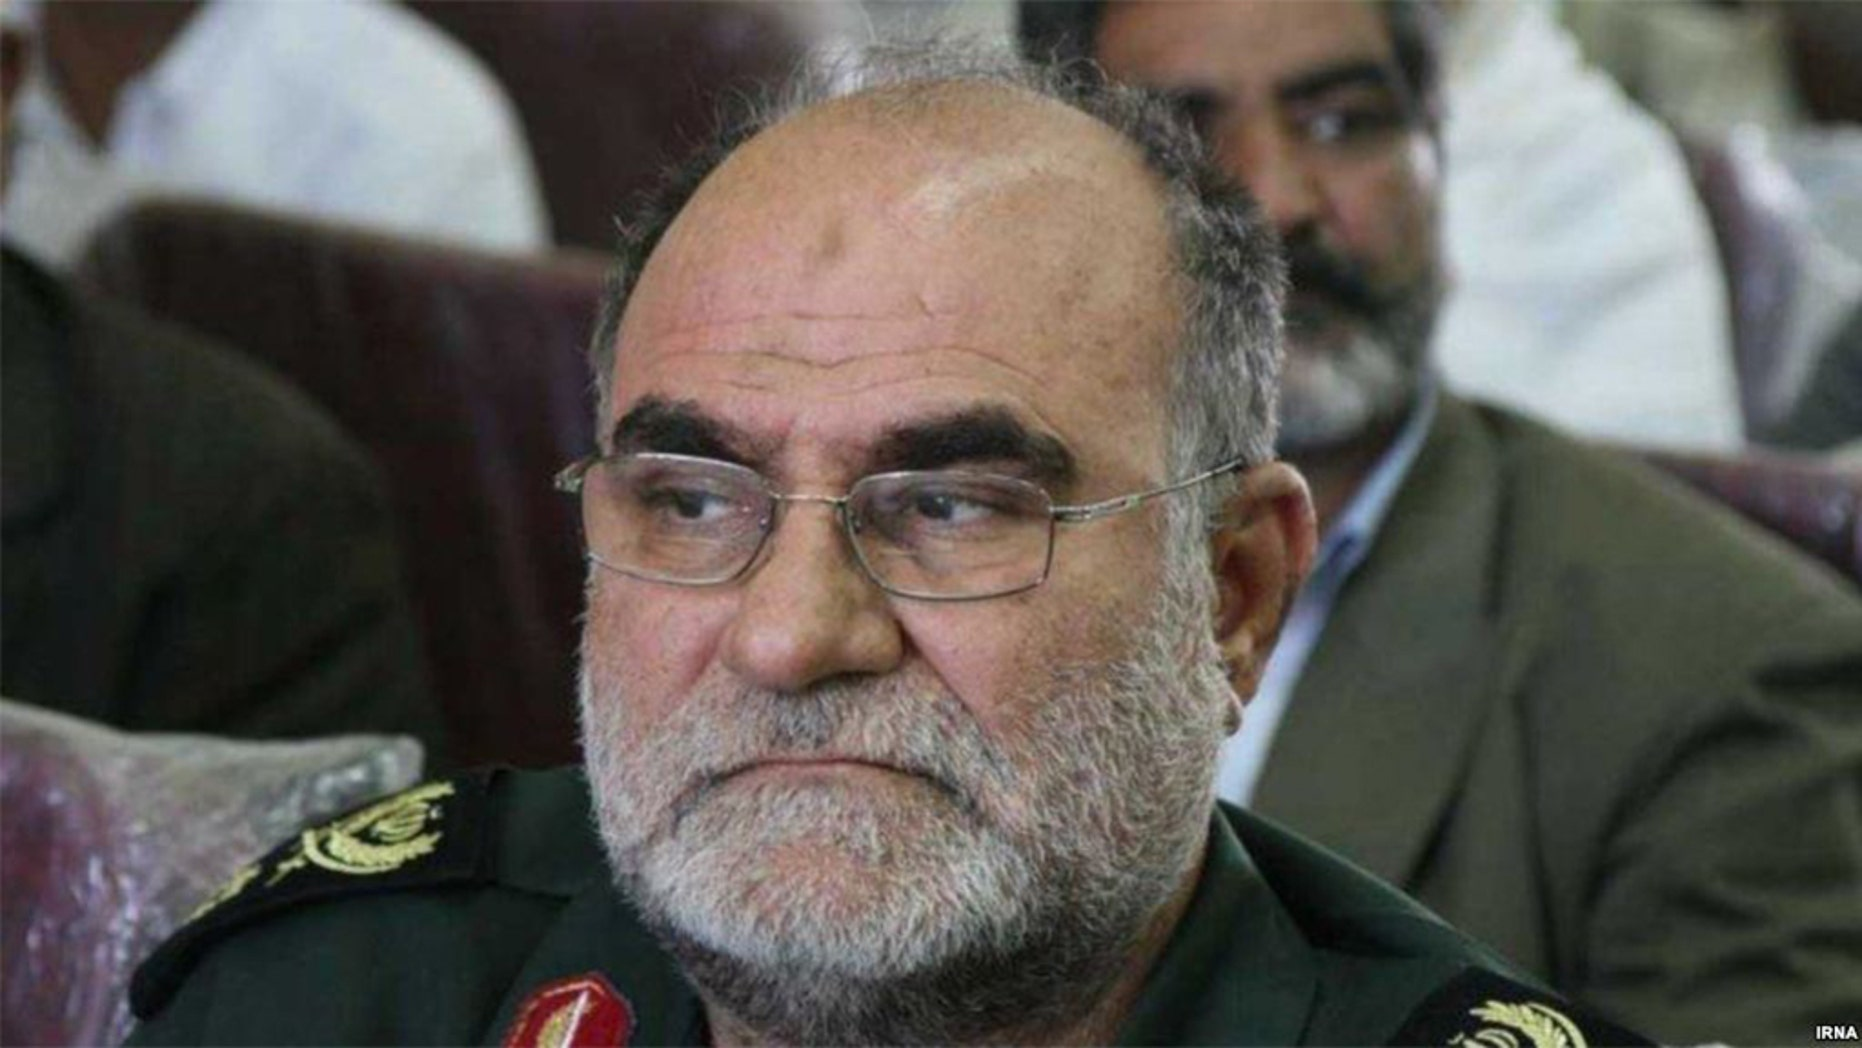 Iranian Gen. Ghodratollah Mansouri shot himself in the head by accident, according to a report.